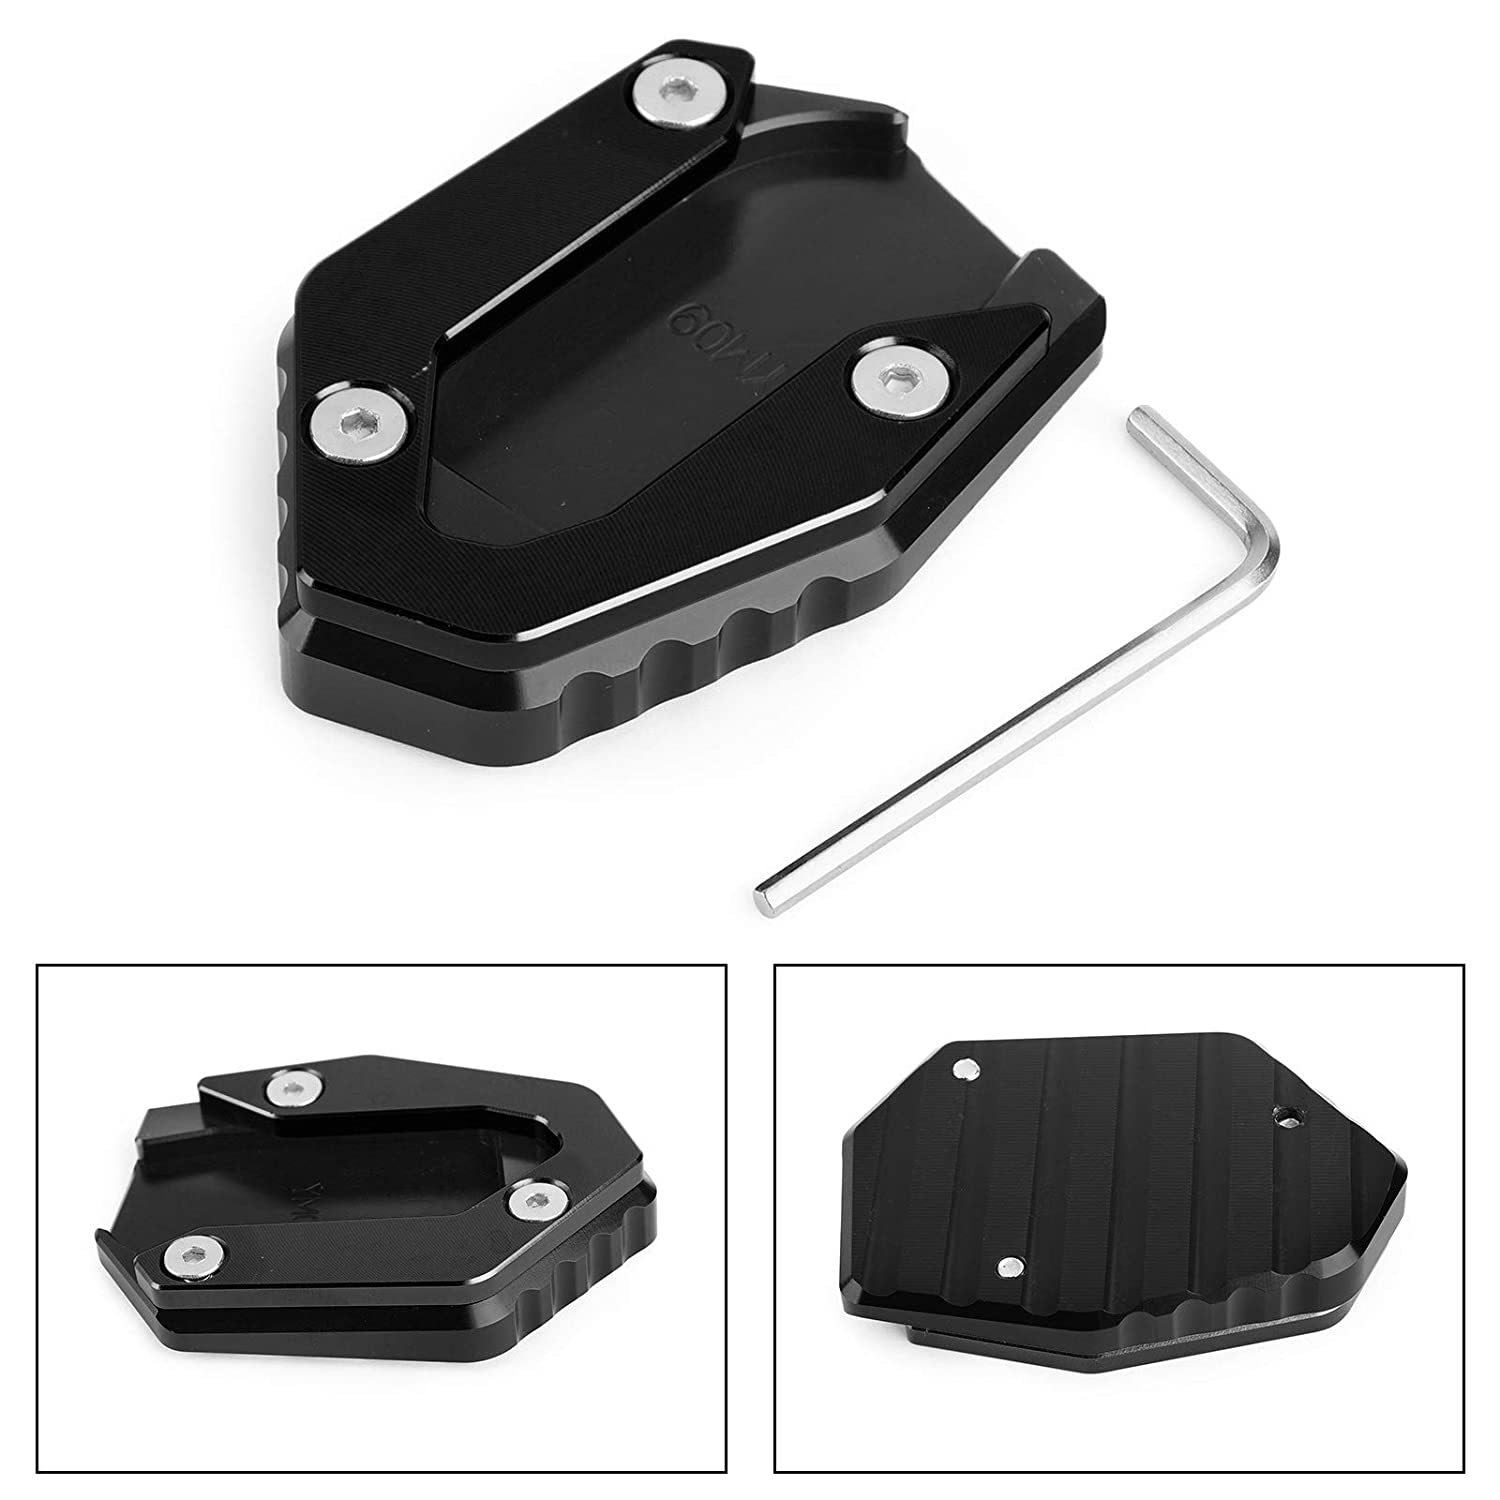 Artudatech Motorcycle Side Stand Plate Motorbike Kickstand Side Kick Stand Enlarger Foot Pad Extension Plate for YAMAHA MT09 FZ09 FJ09 TRACER 900 2015-2019